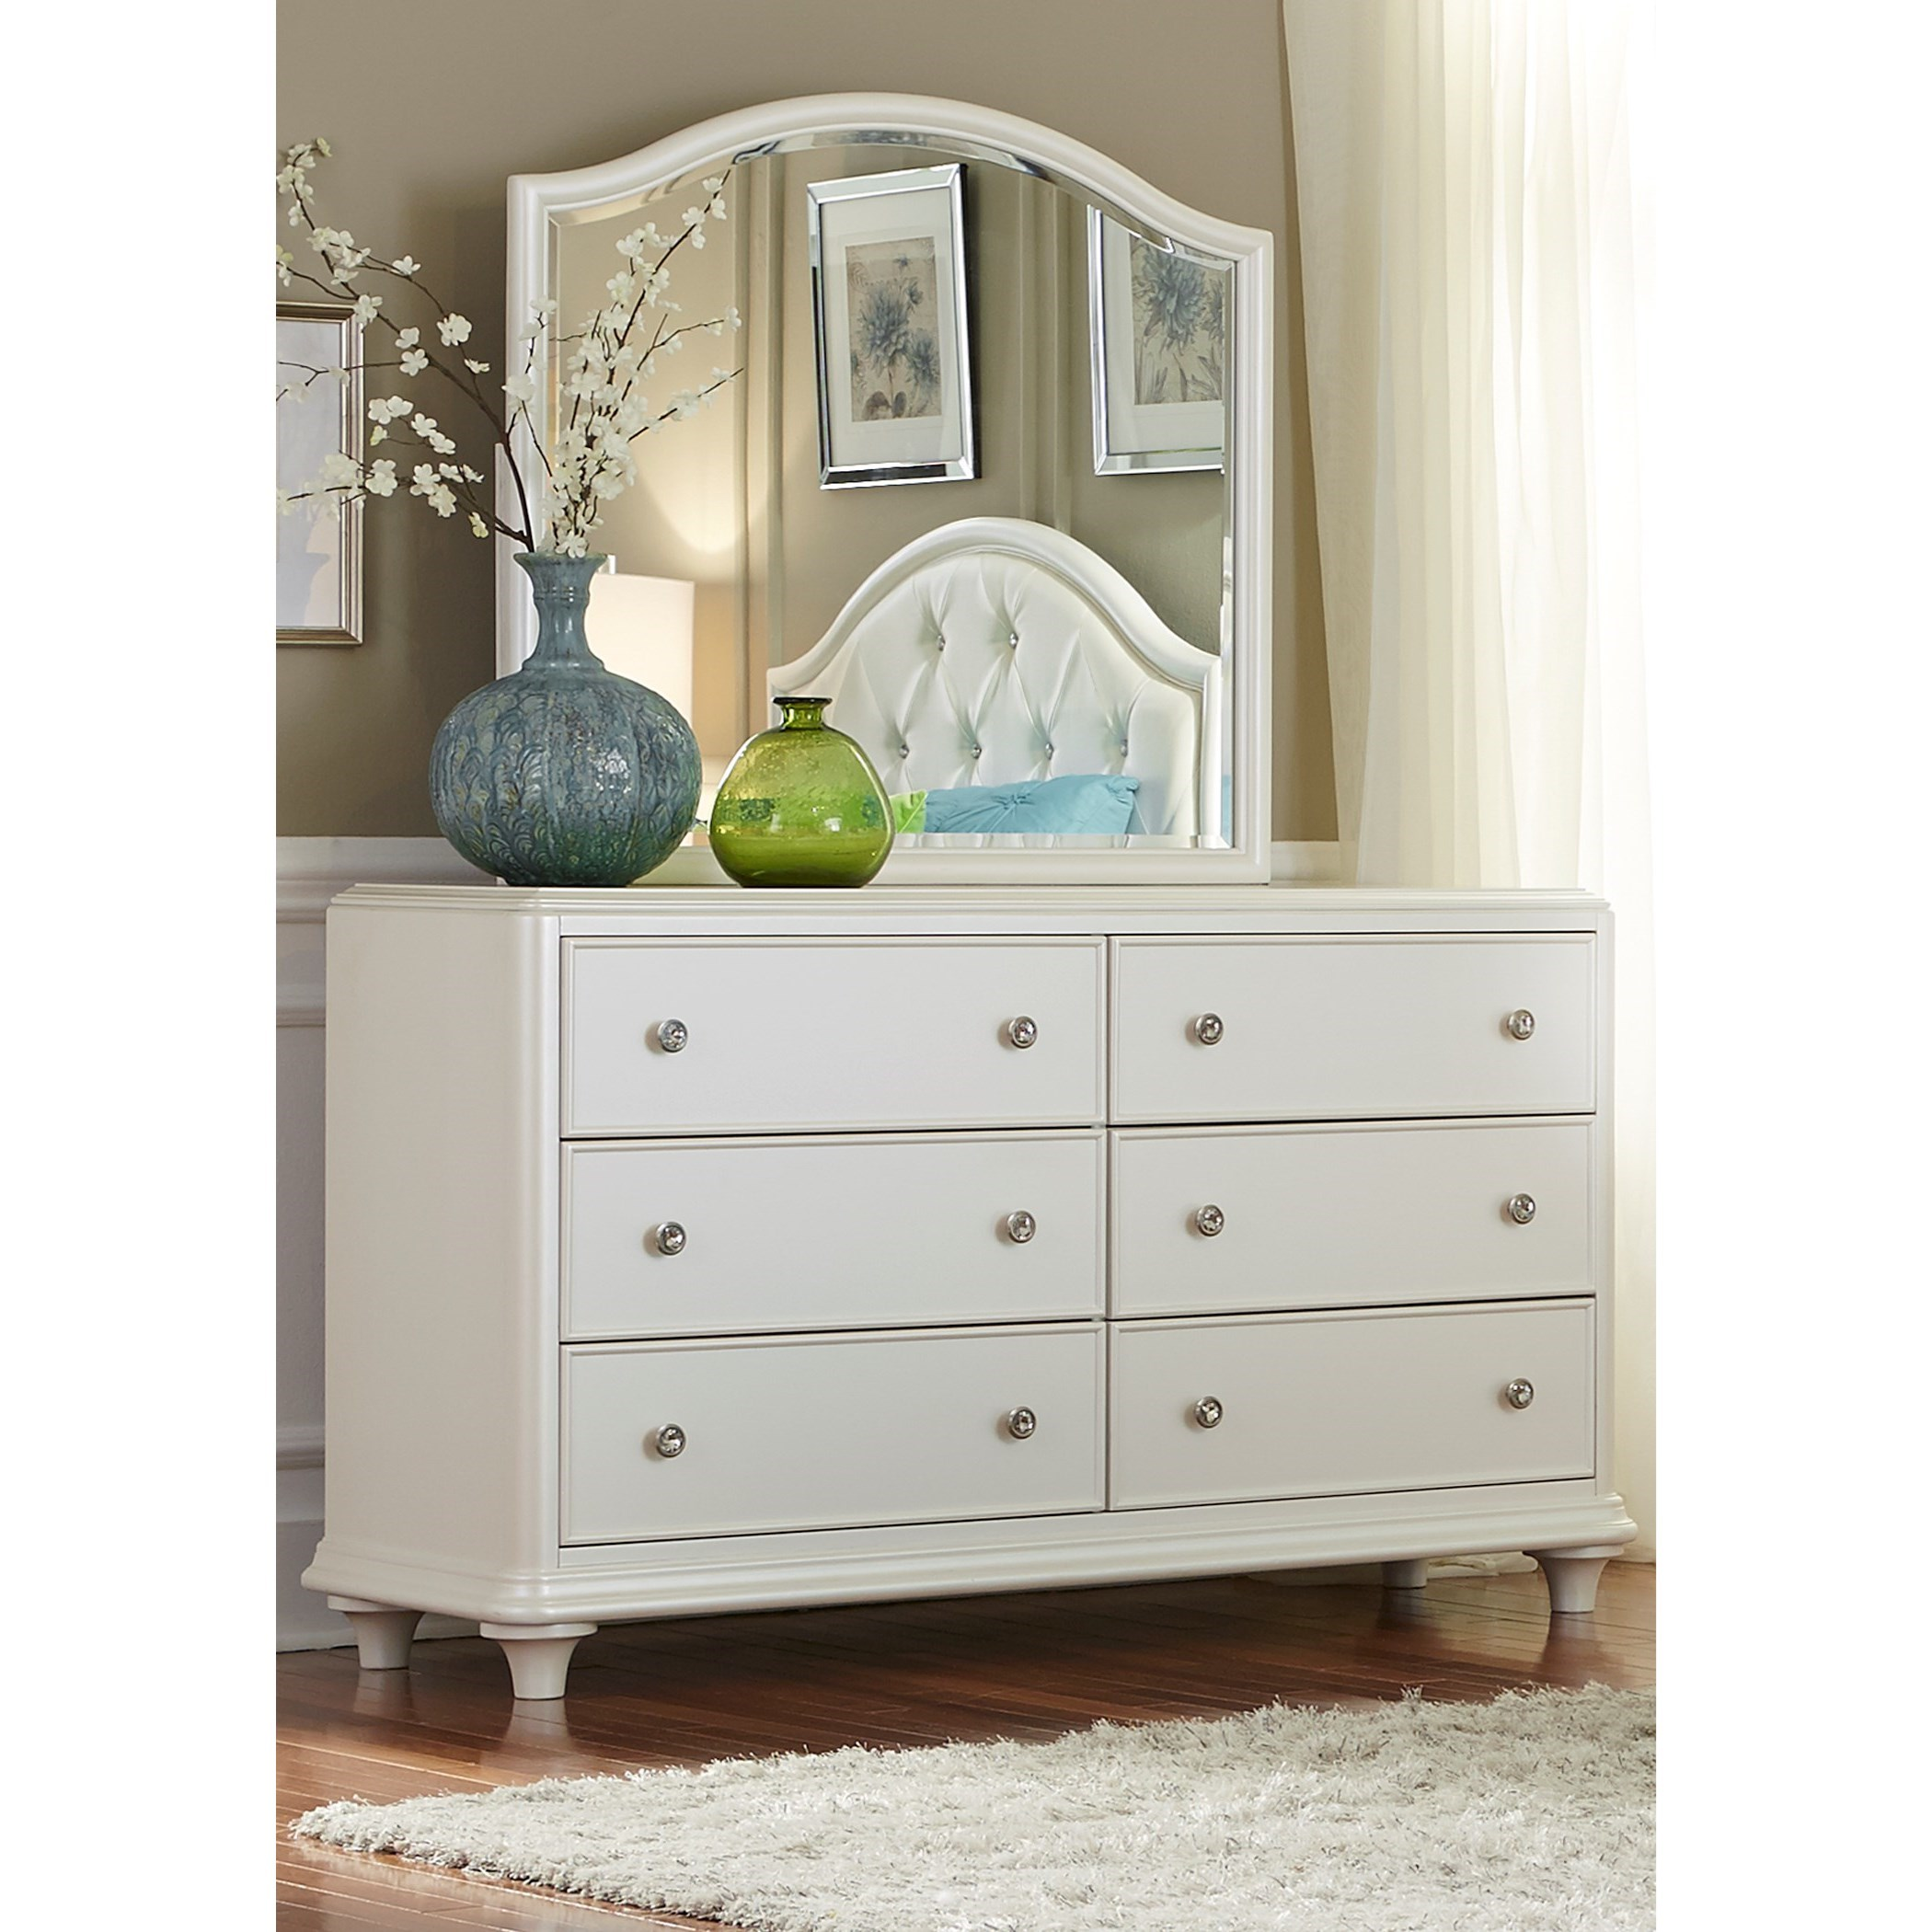 Stardust Dresser and Mirror by Liberty Furniture at Darvin Furniture